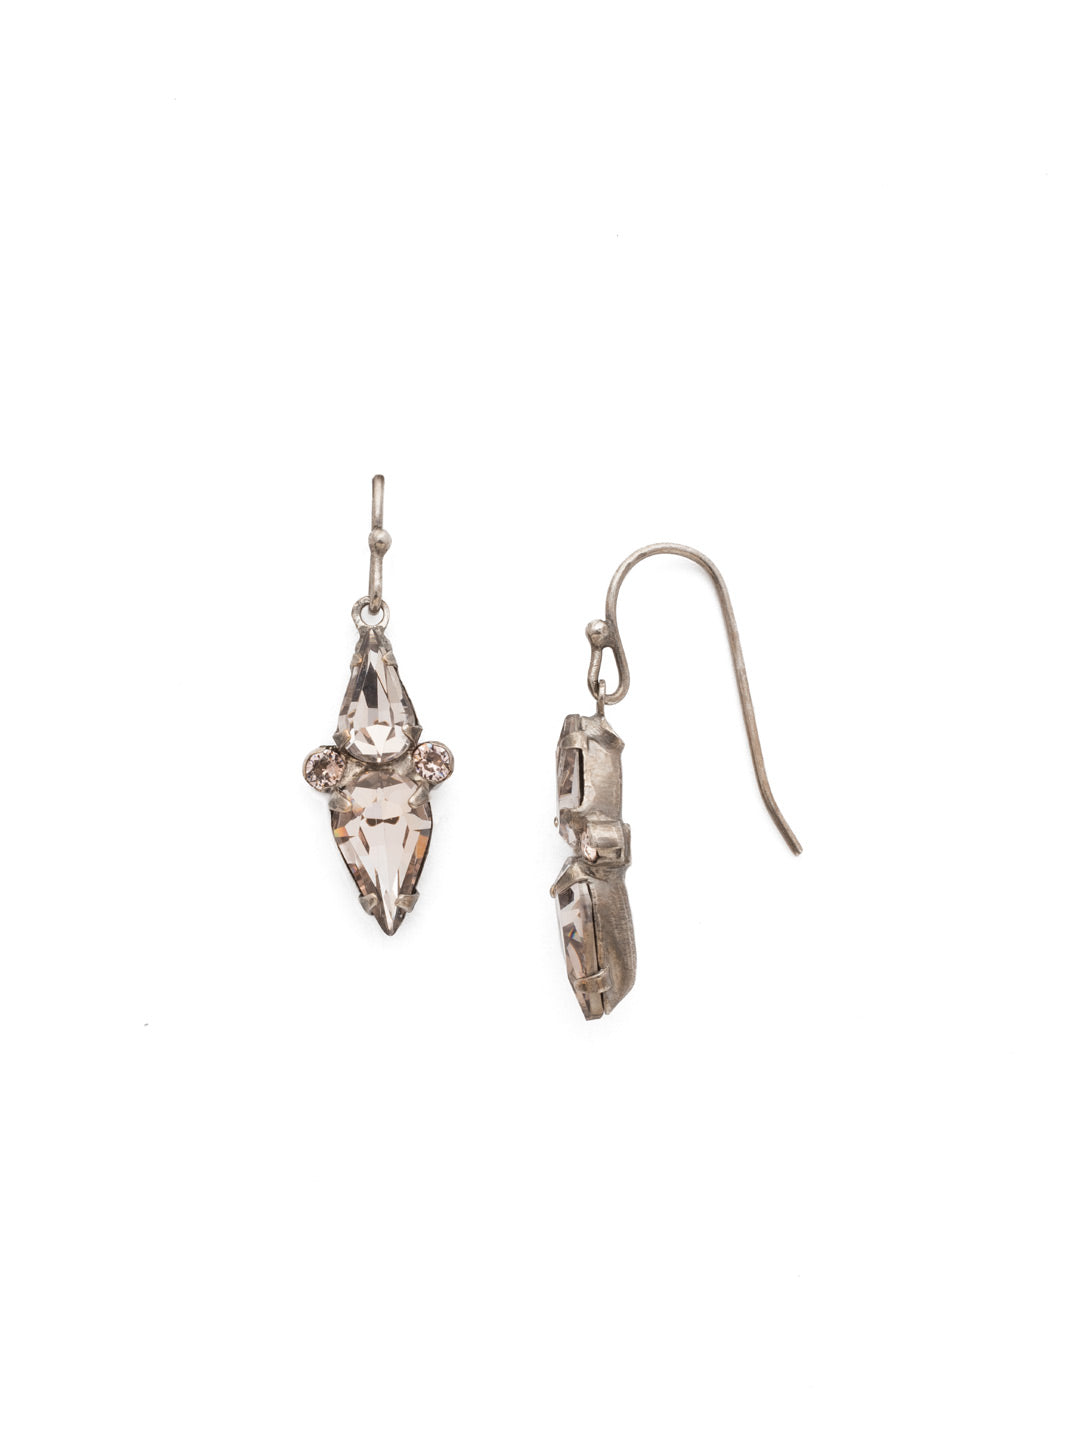 Mirror Image Dangle Earrings - EDP4ASSBL